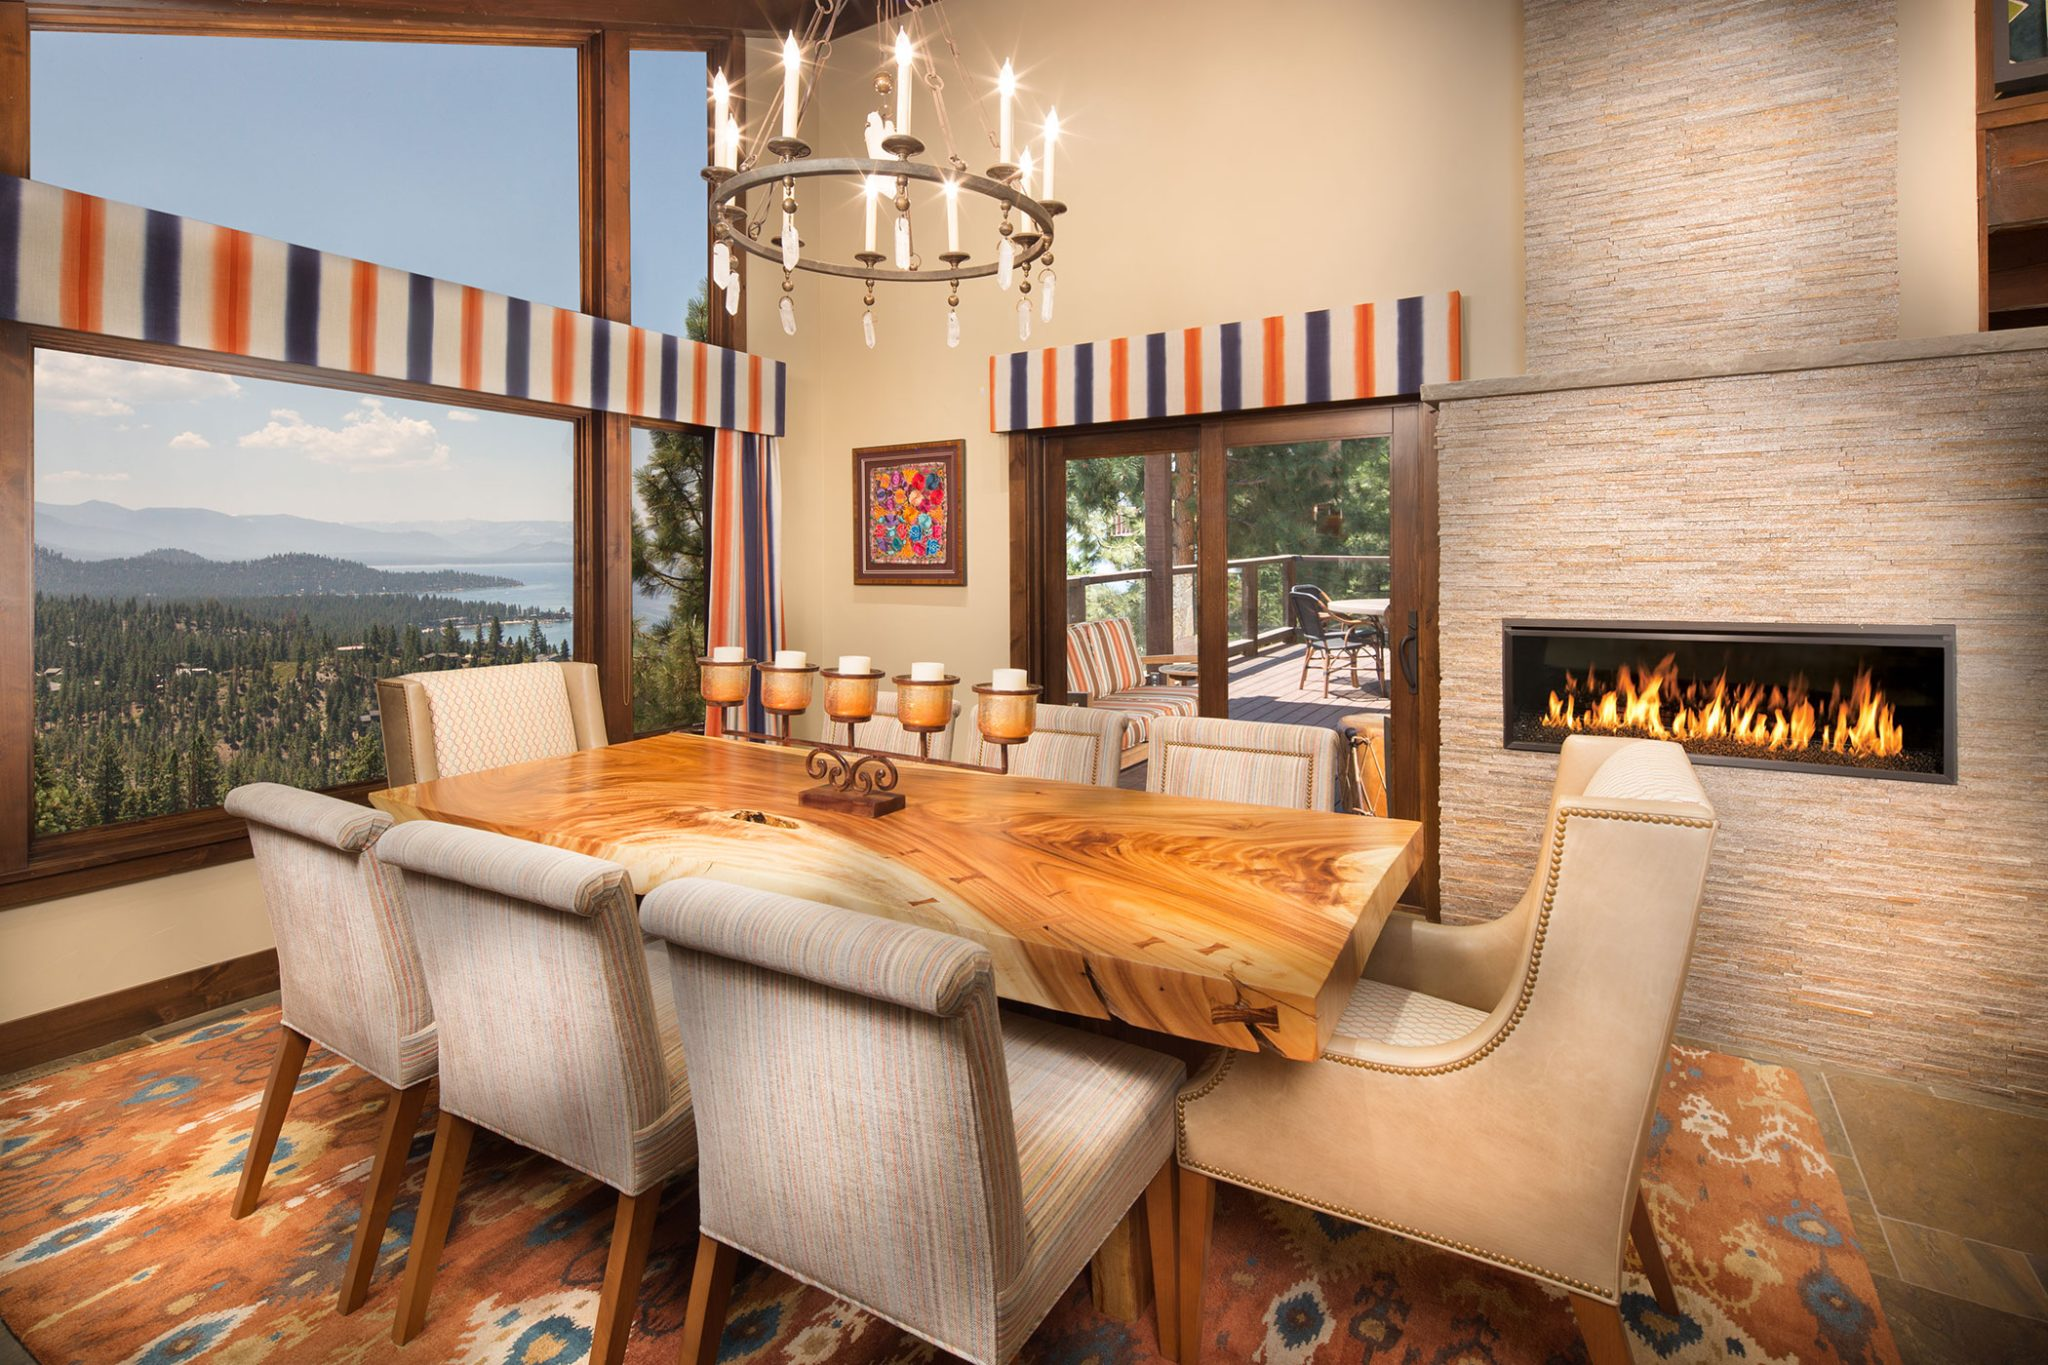 Eclectic Lift, Zephyr Cove, NV, Lake Tahoe, dining room by Aspen Leaf Interiors, Inc.